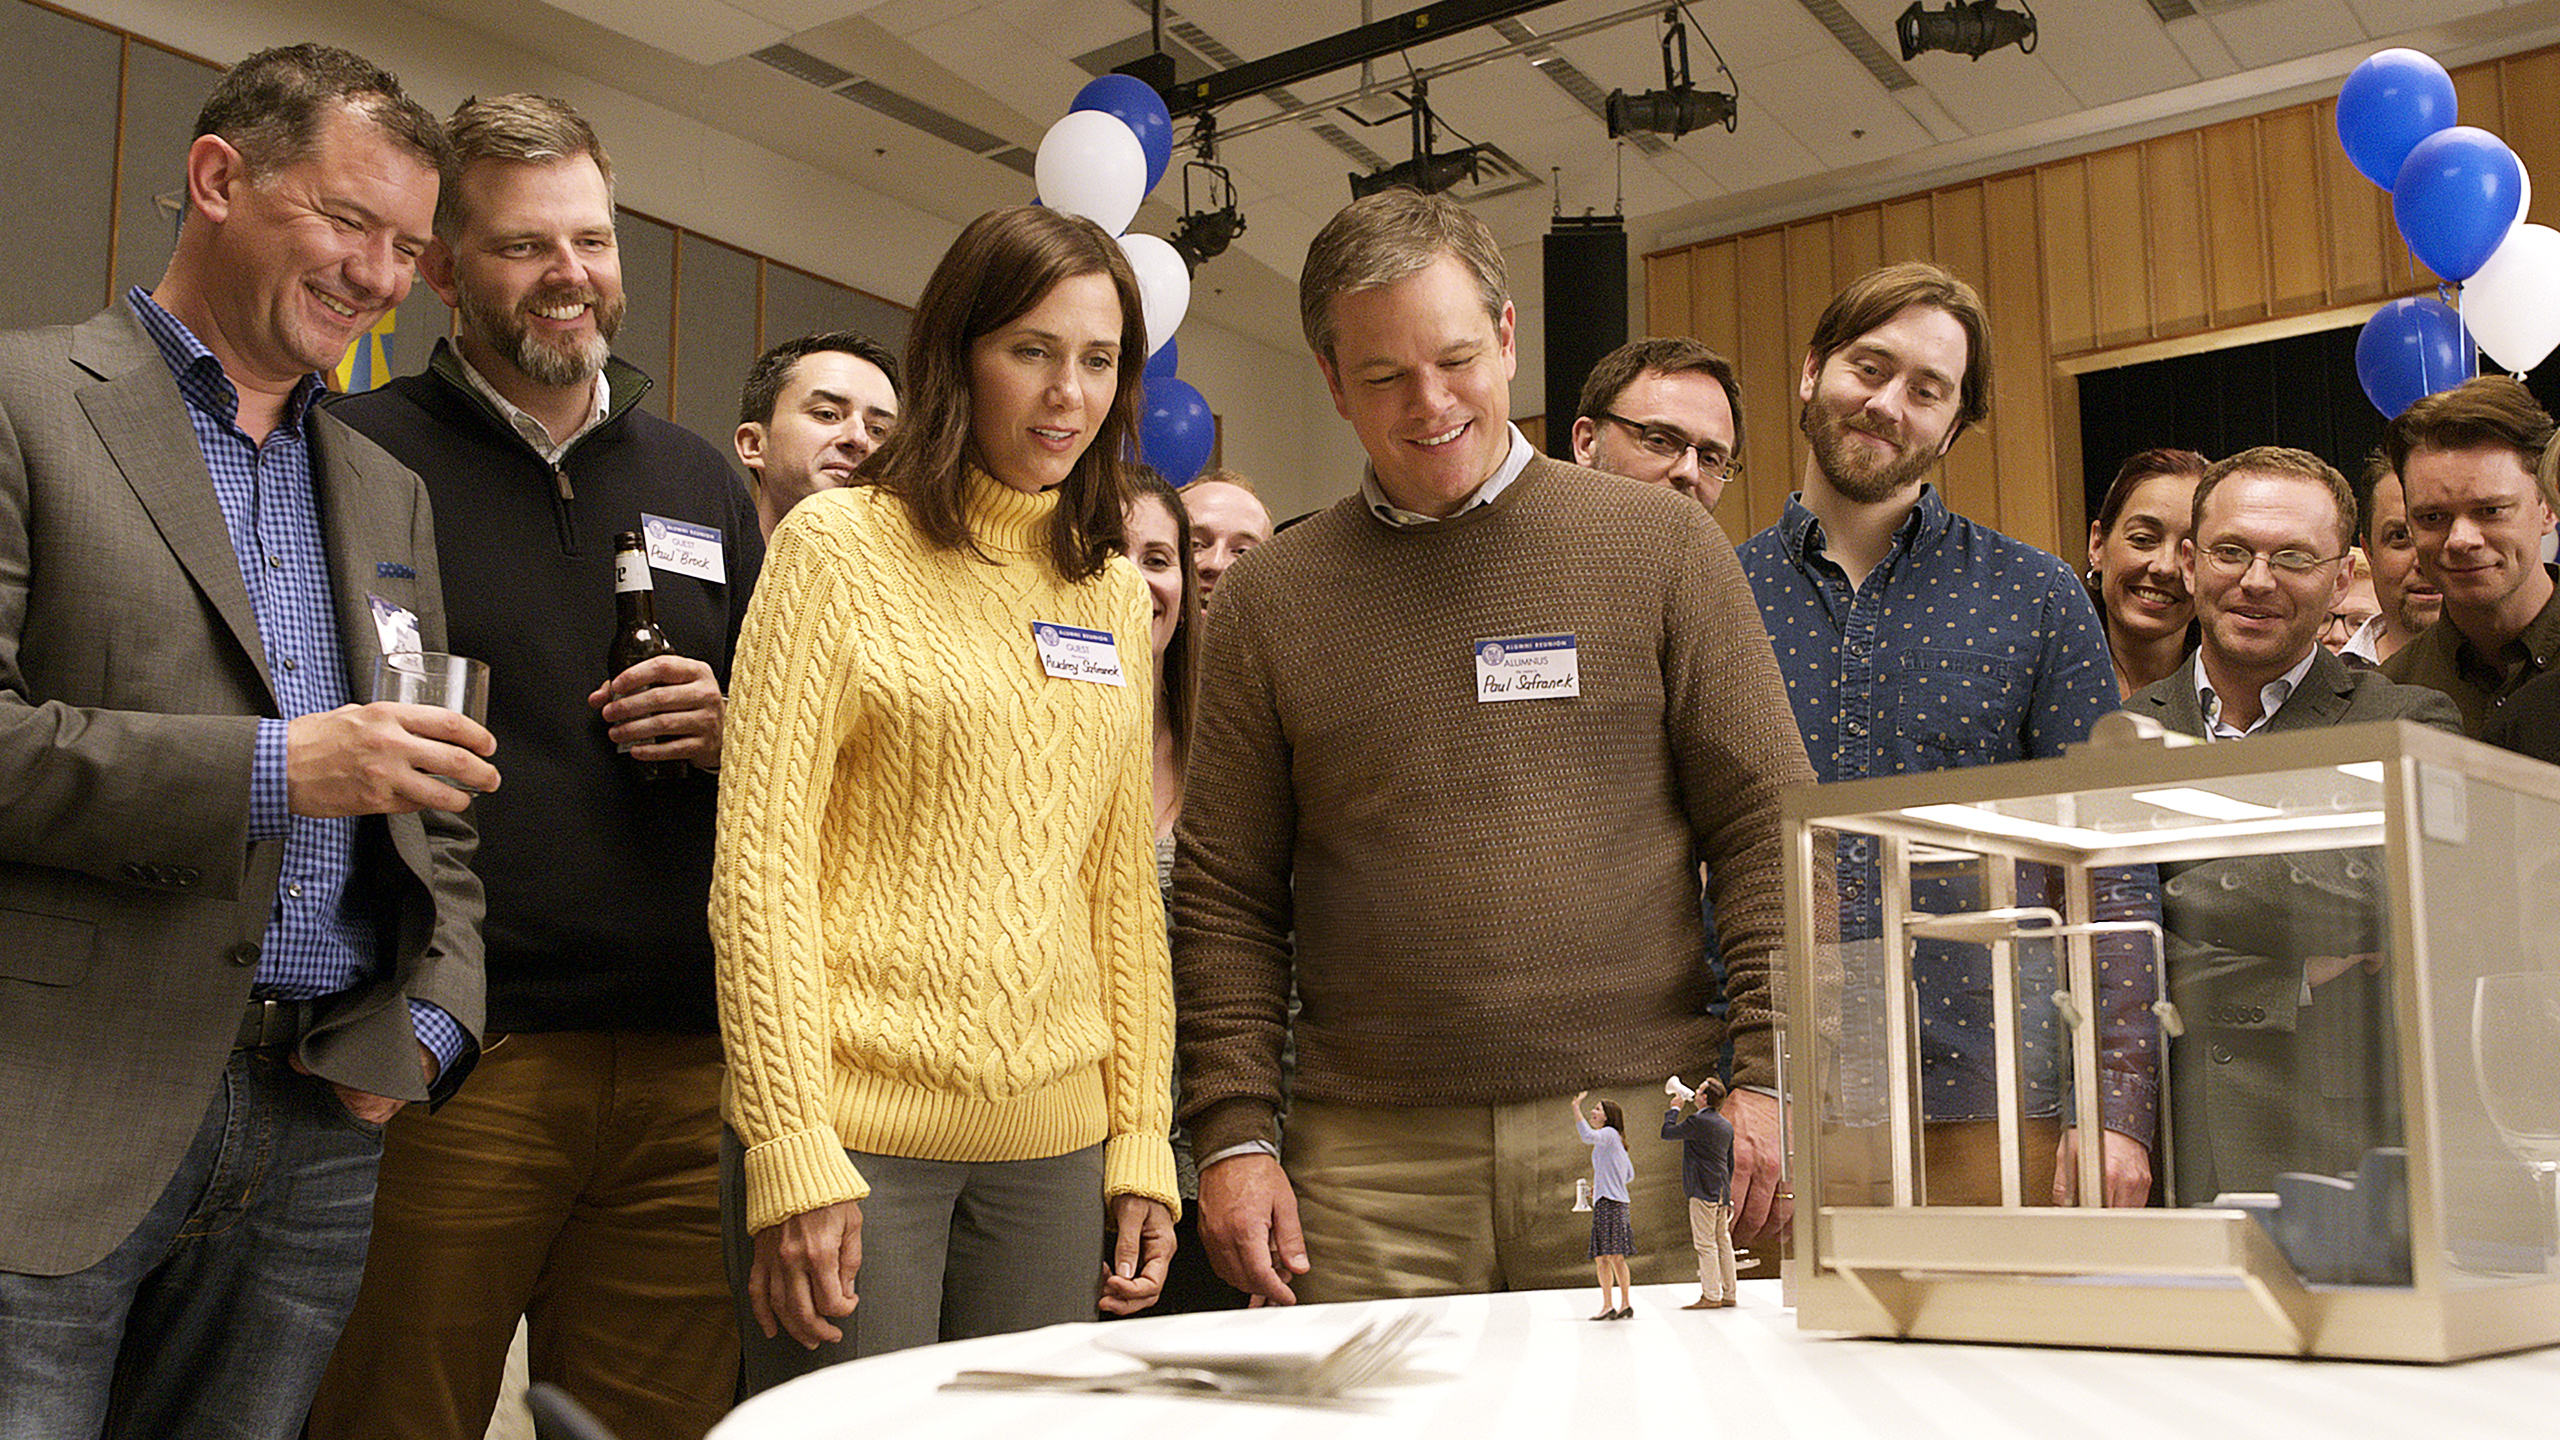 Downsizing takes the dullest path through a brilliant ...